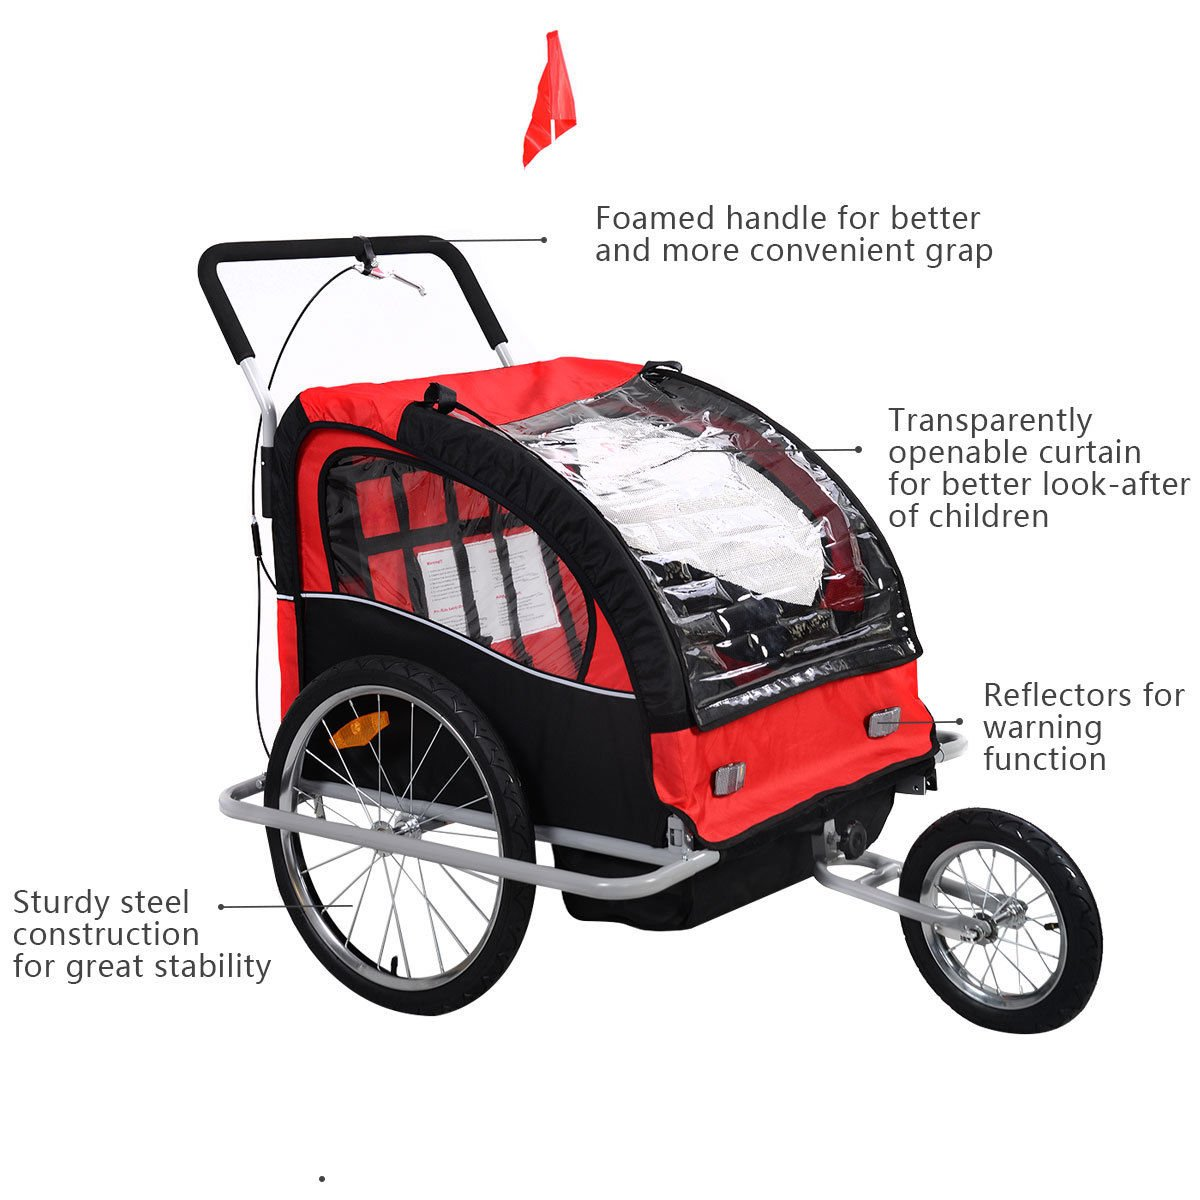 Bicycle Carrier Double Baby Bike Trailer Jogger Stroller 2 in 1 by Caraya (Image #3)